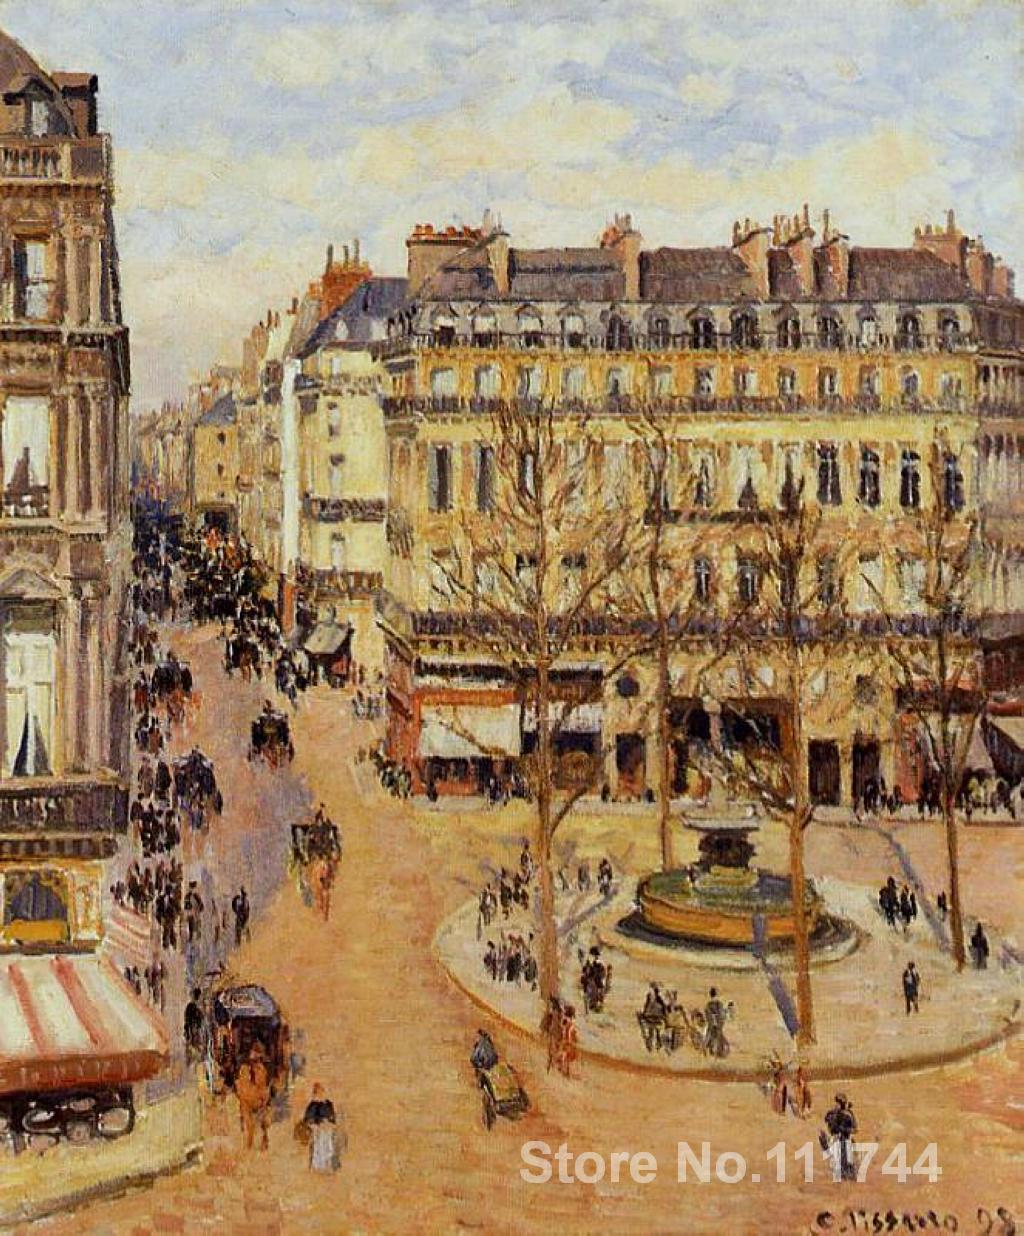 famous artwork Rue Saint Honore Morning Sun Effect Place du Theatre Francais Camille Pissarro paintings High quality Handpaintedfamous artwork Rue Saint Honore Morning Sun Effect Place du Theatre Francais Camille Pissarro paintings High quality Handpainted